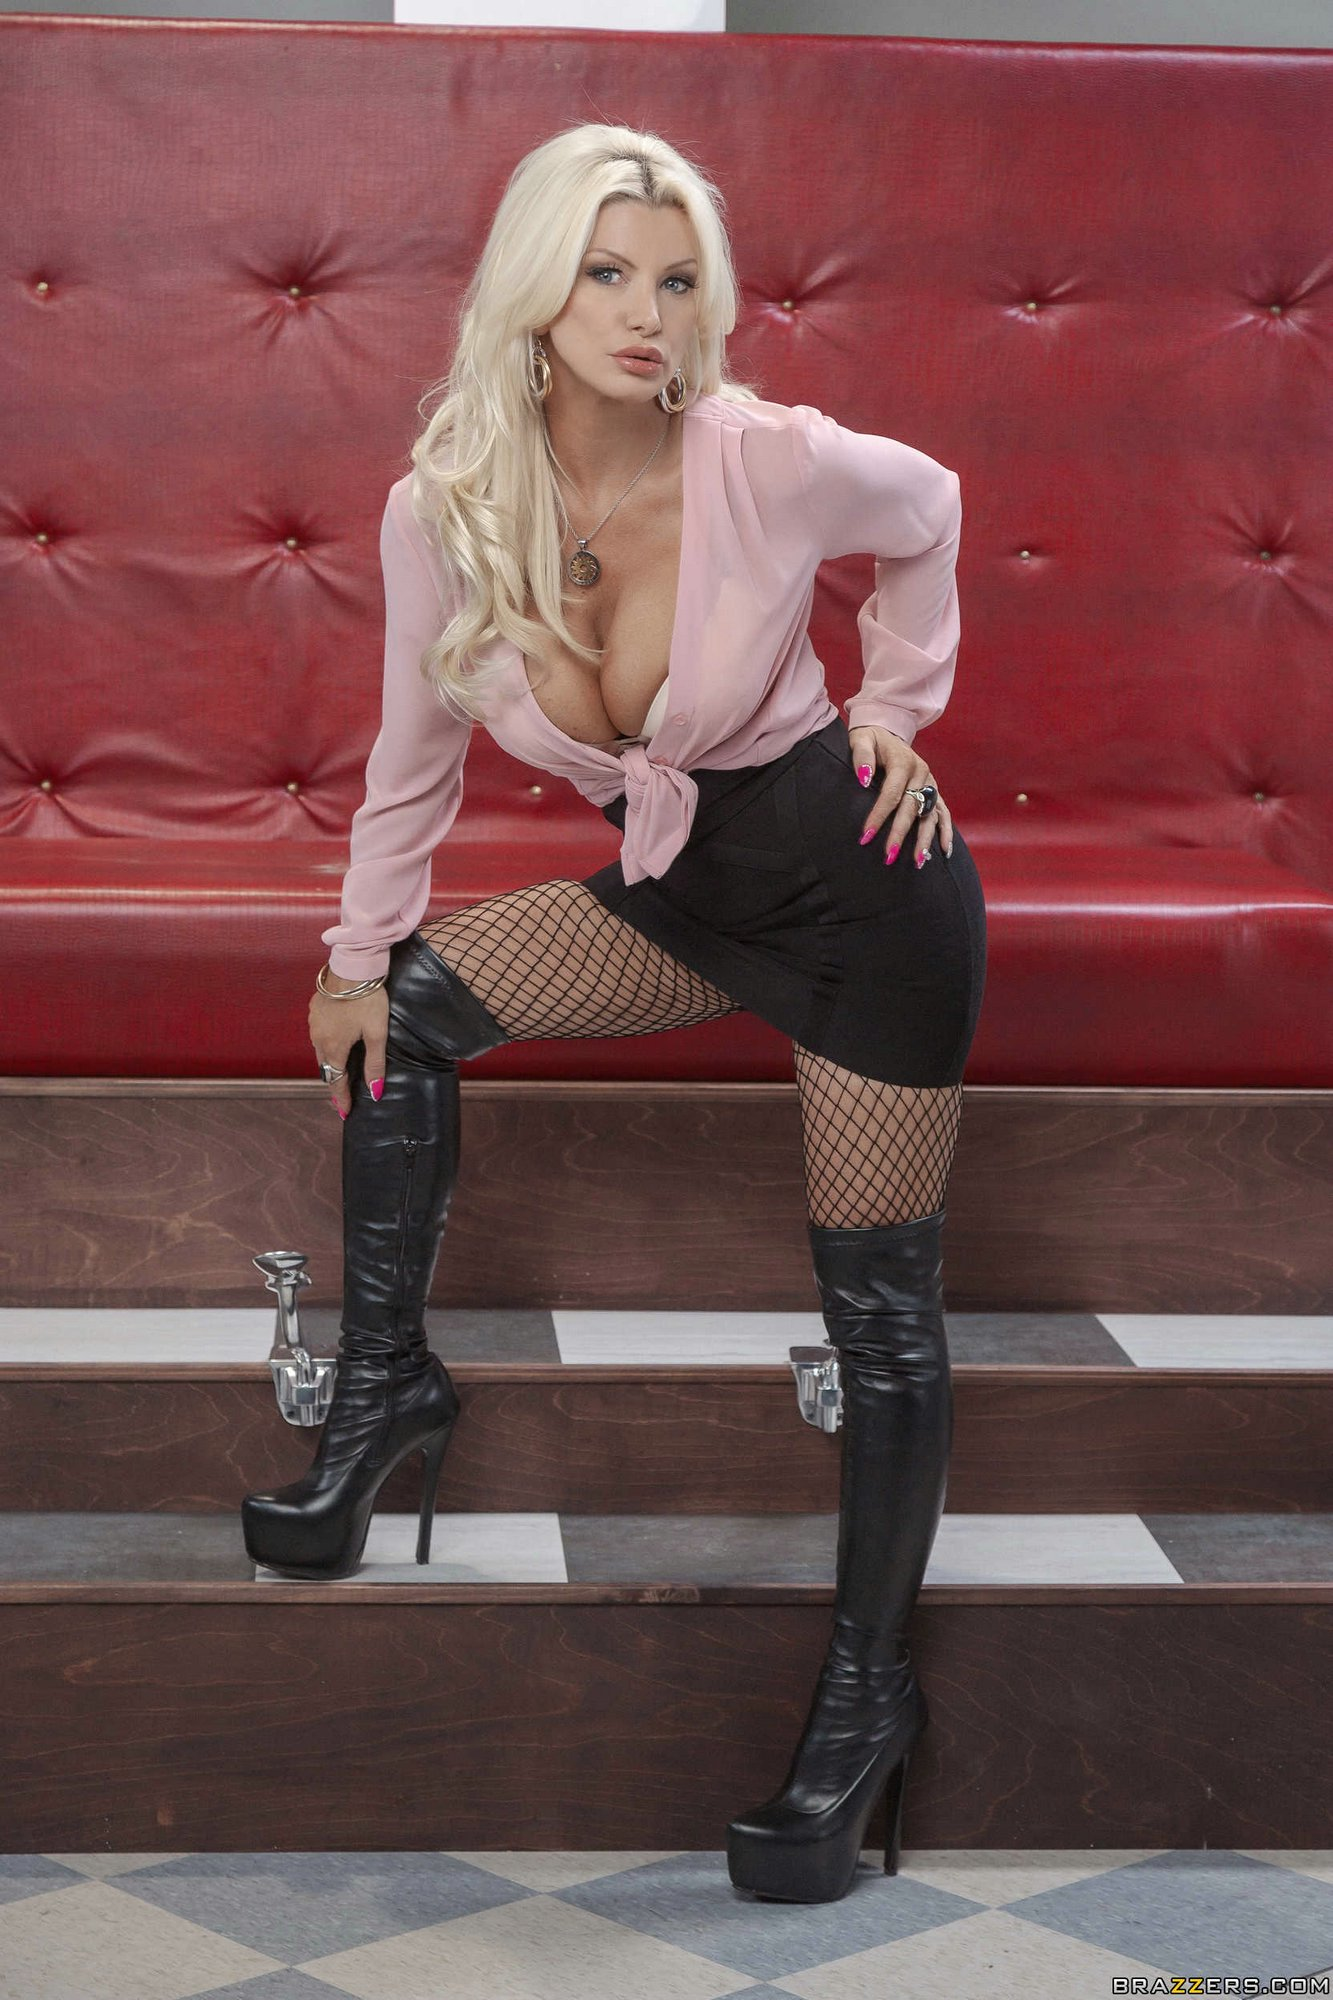 Brittany Andrews Posing In Fishnet Stockings And Black -1374